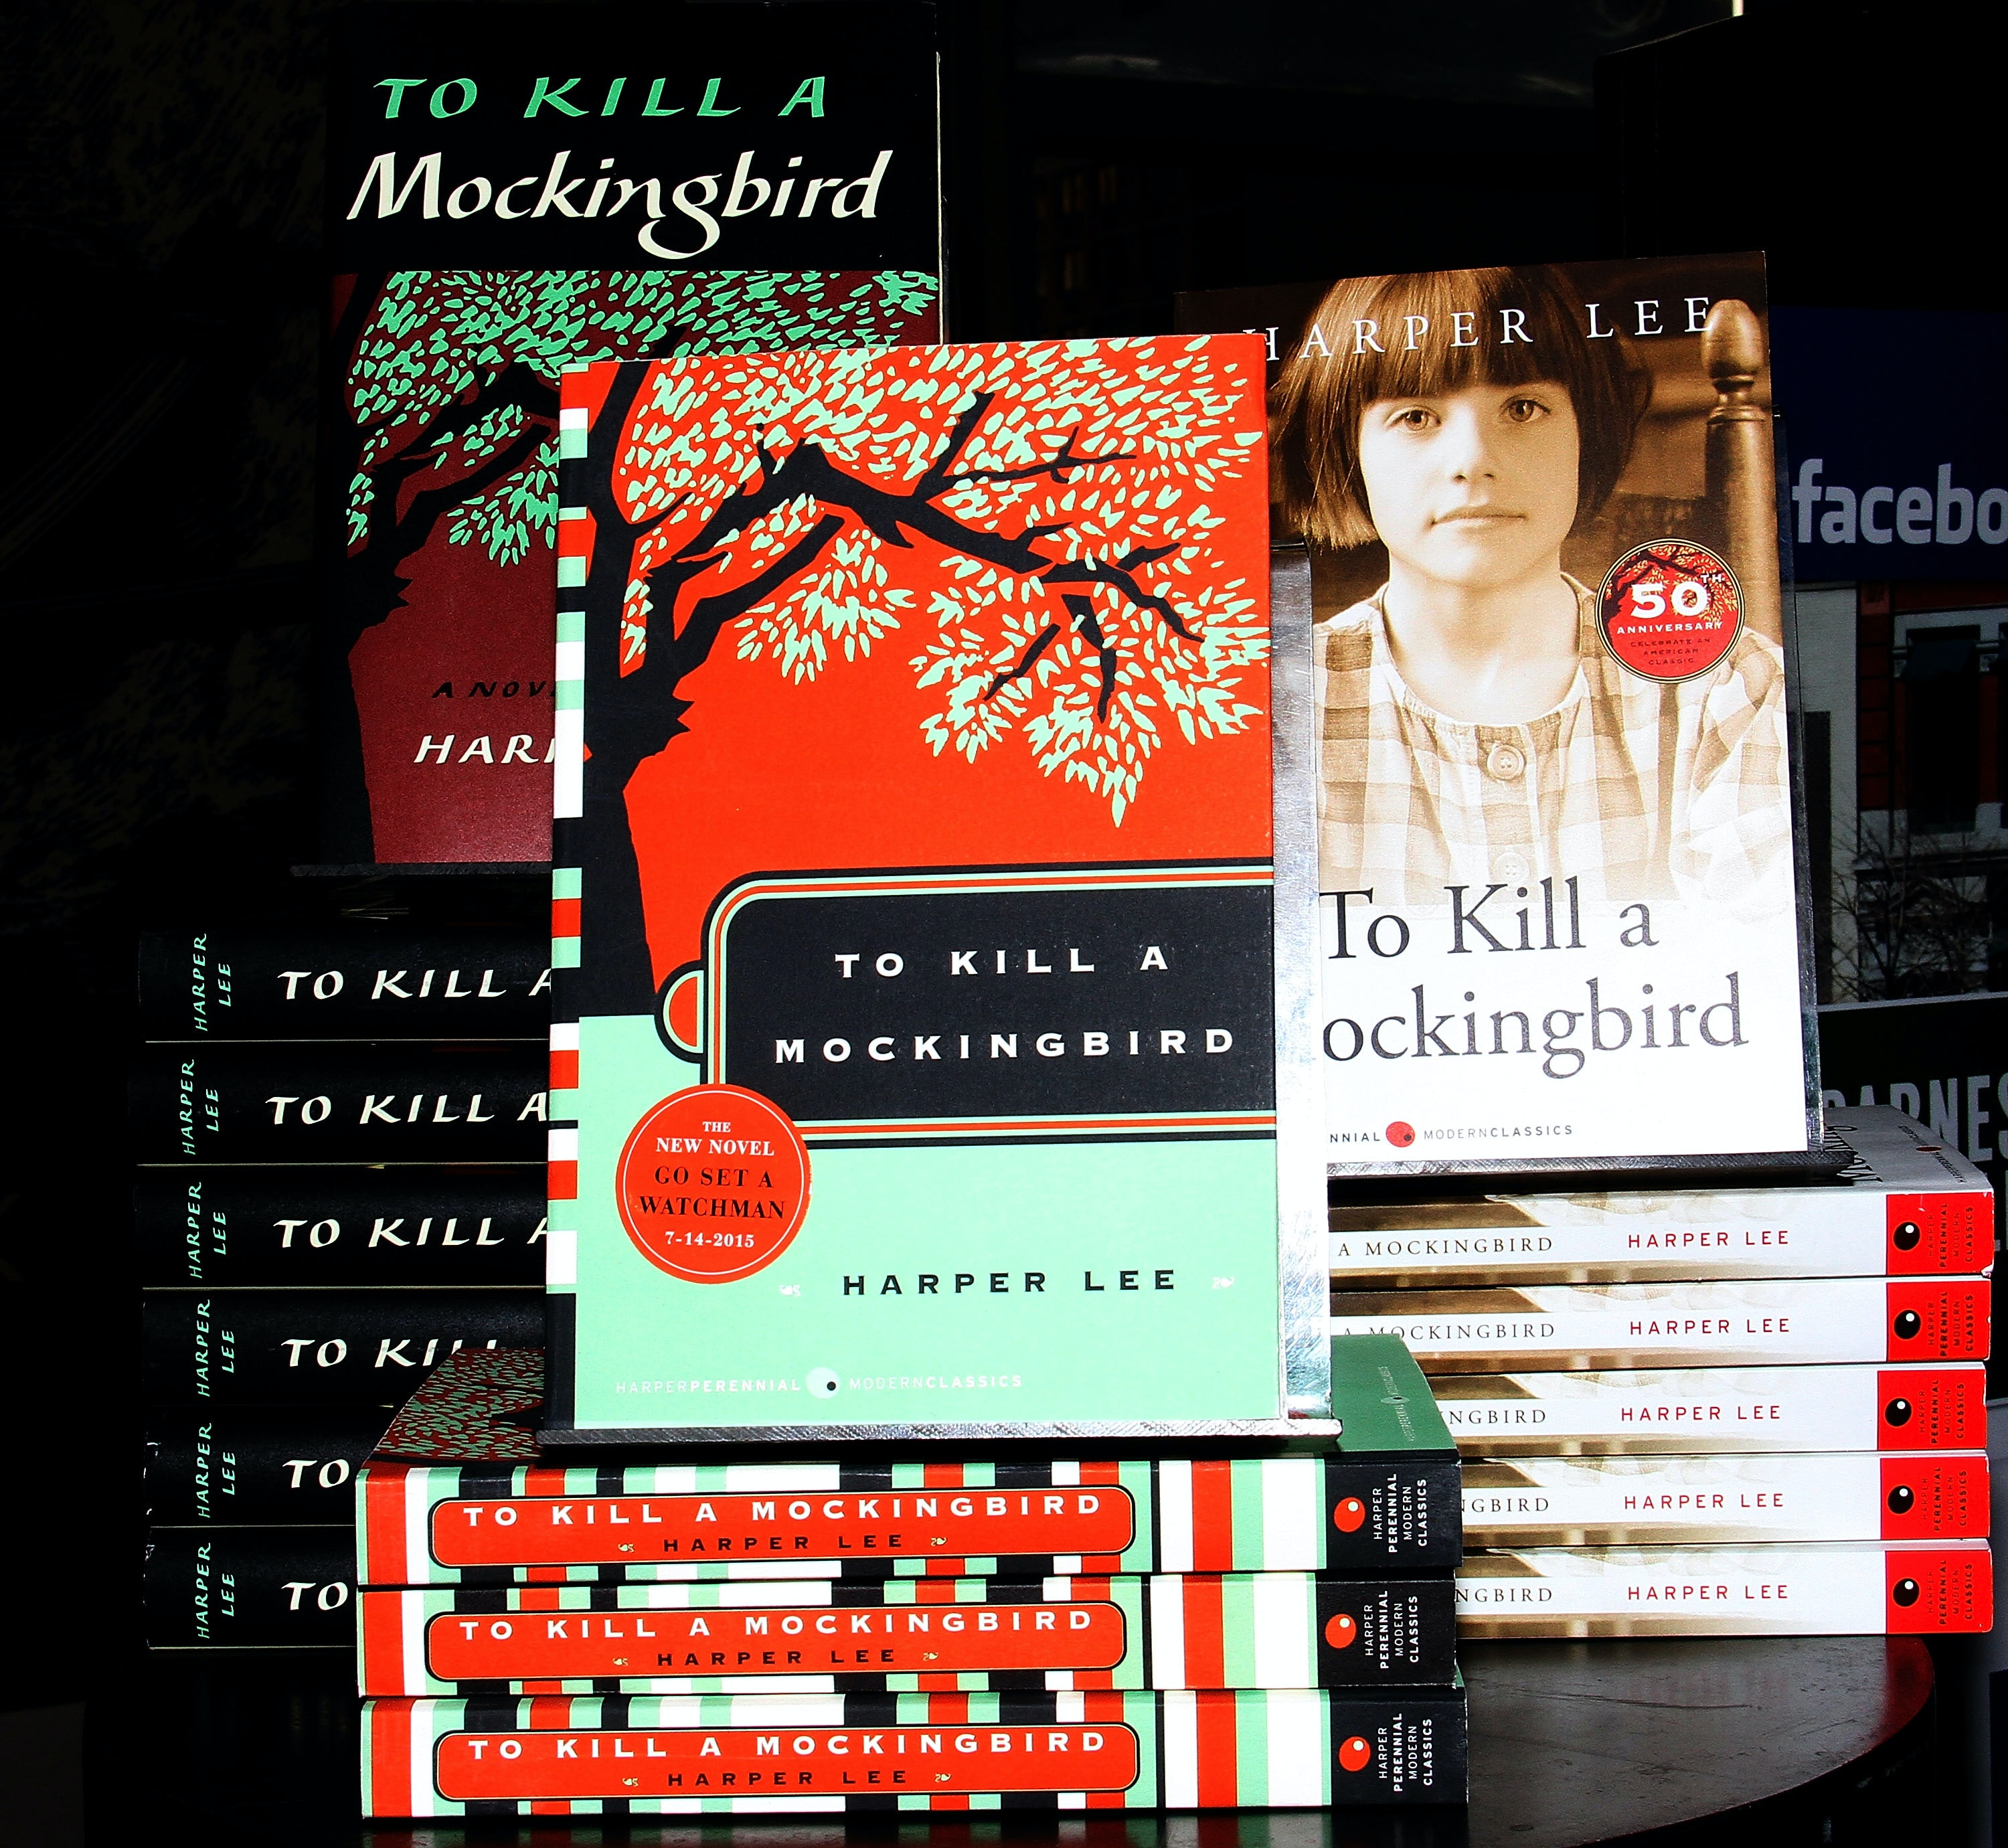 Mississippi school district pulls 'To Kill a Mockingbird' because it 'makes people uncomfortable'